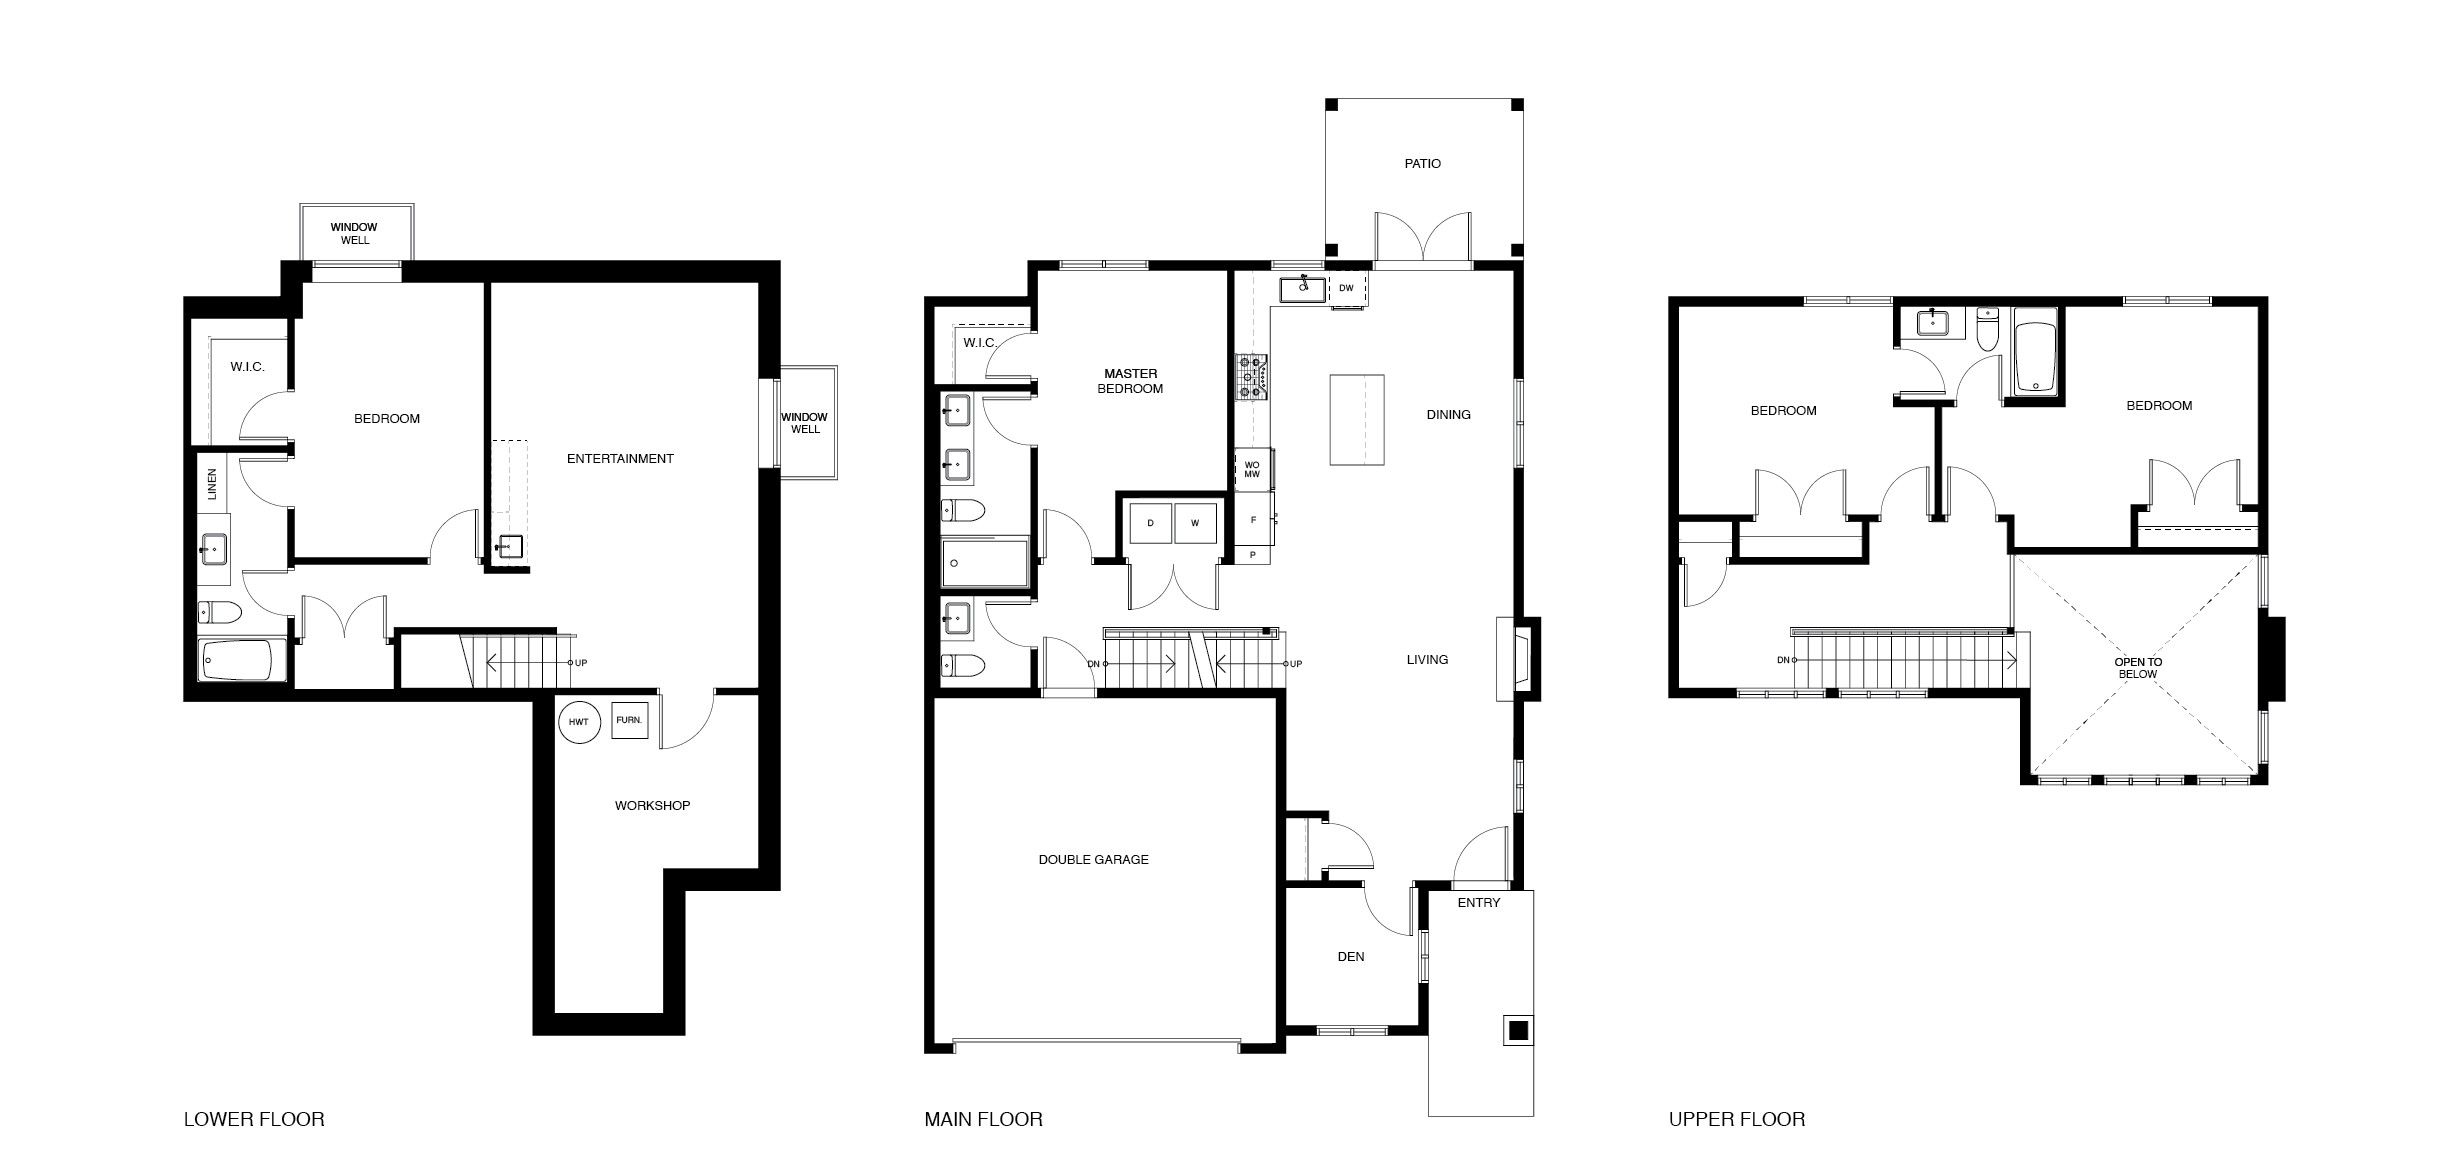 Floorplan - Unit C